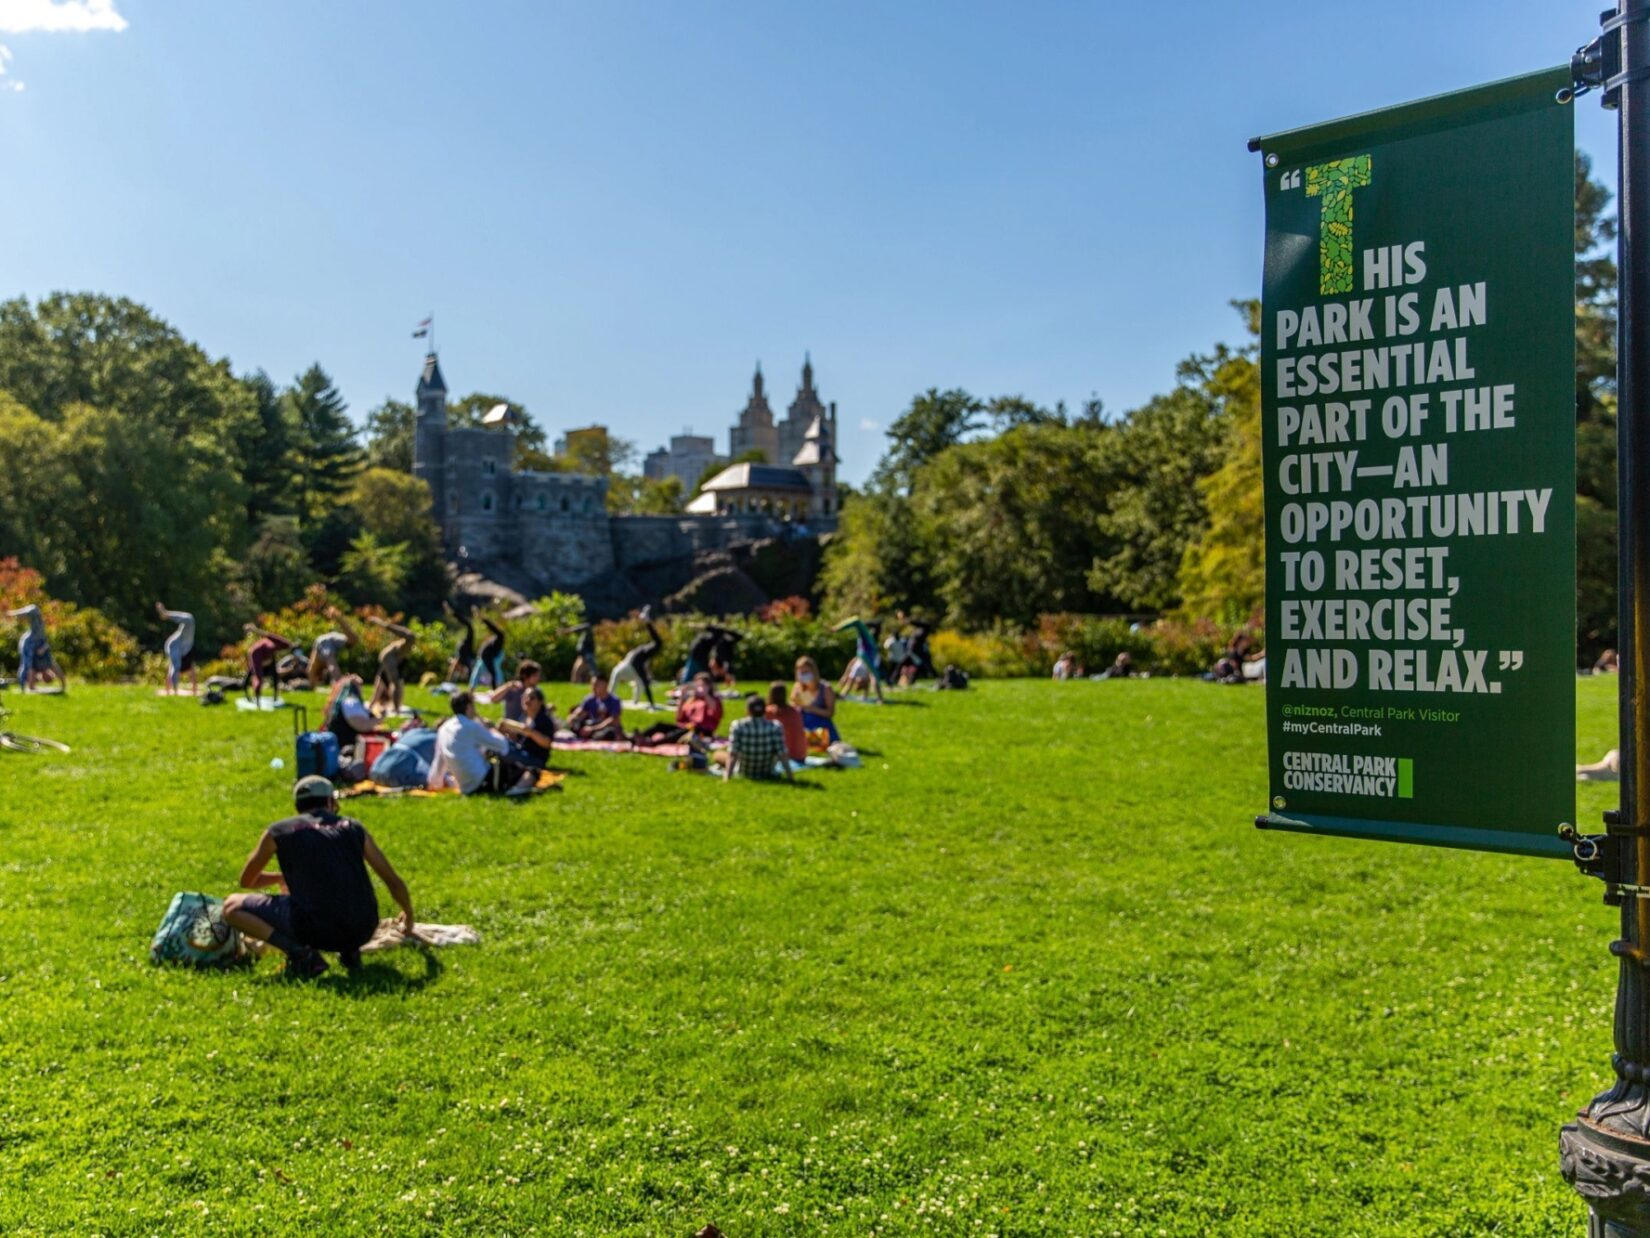 People enjoy a Park lawn under a beautiful blue sky, with a banner hanging from a lamppost entering the frame on the right. The banner has a quote about the Park.